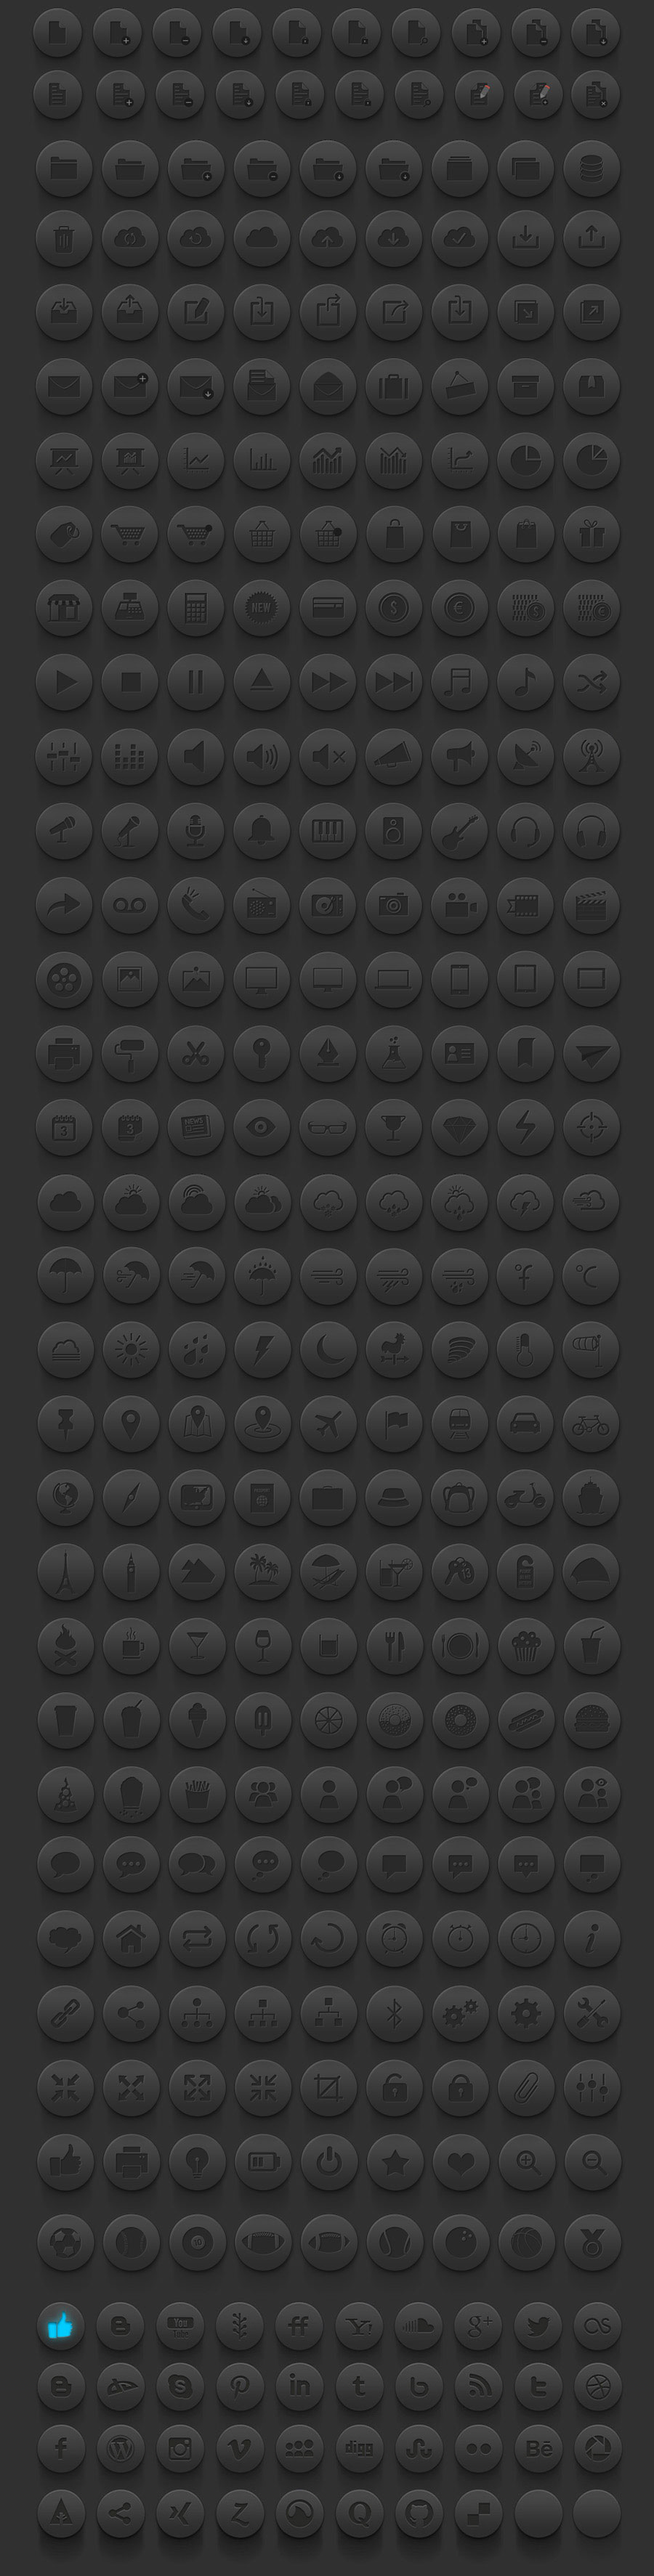 buttons-black